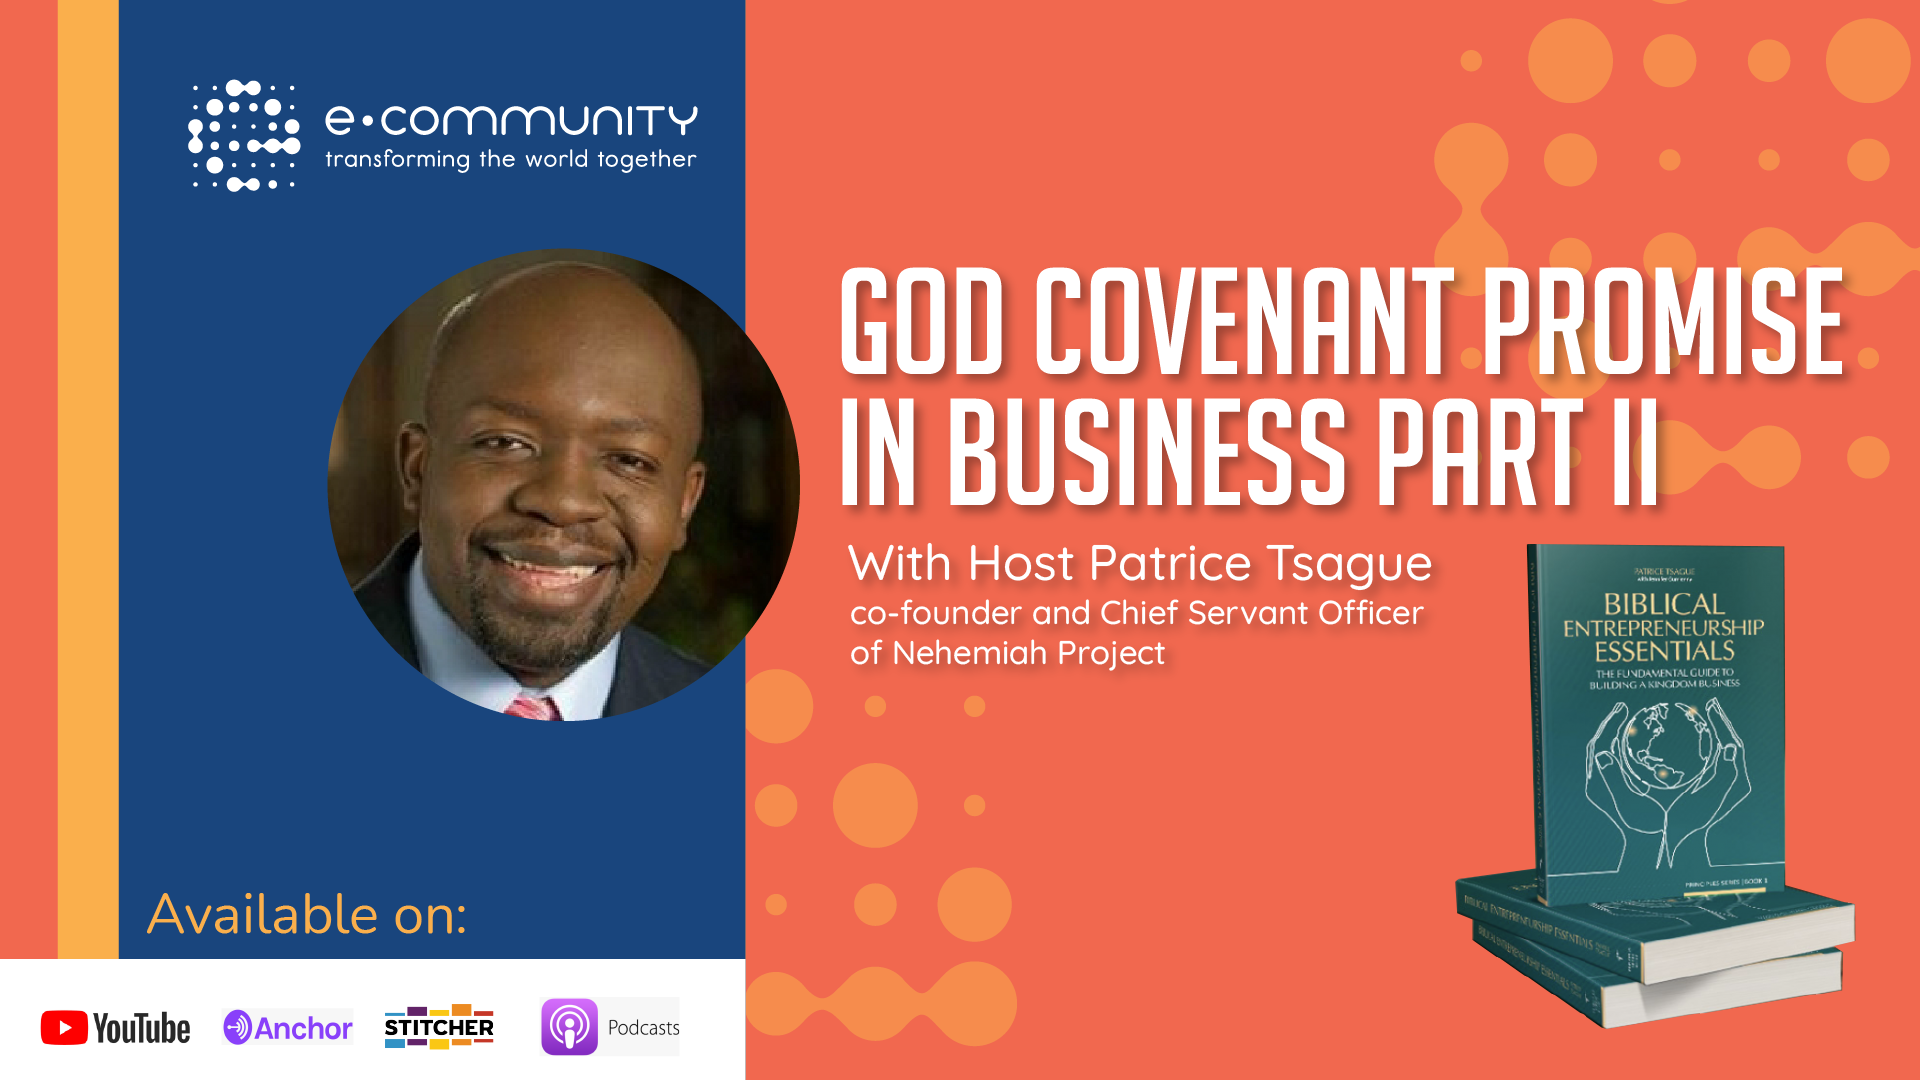 God's Covenant Promise in Business Part II